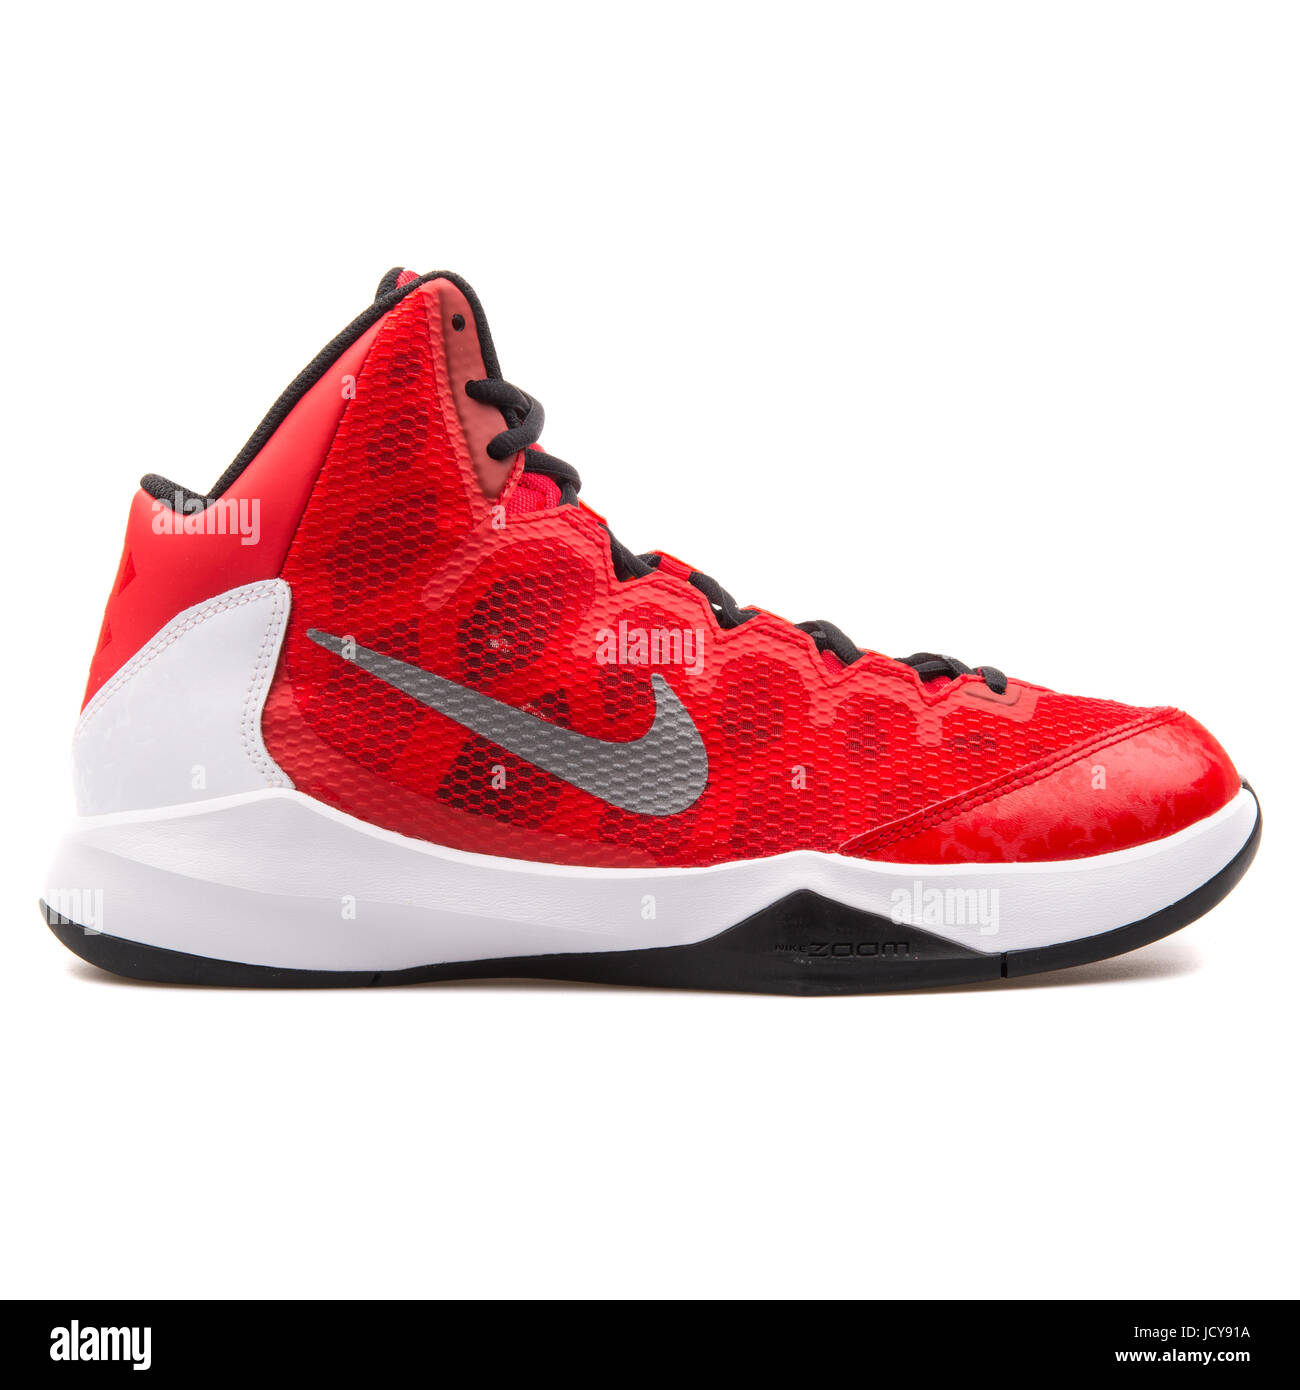 6d4566c1ac412 Nike Zoom Without A Doubt Red